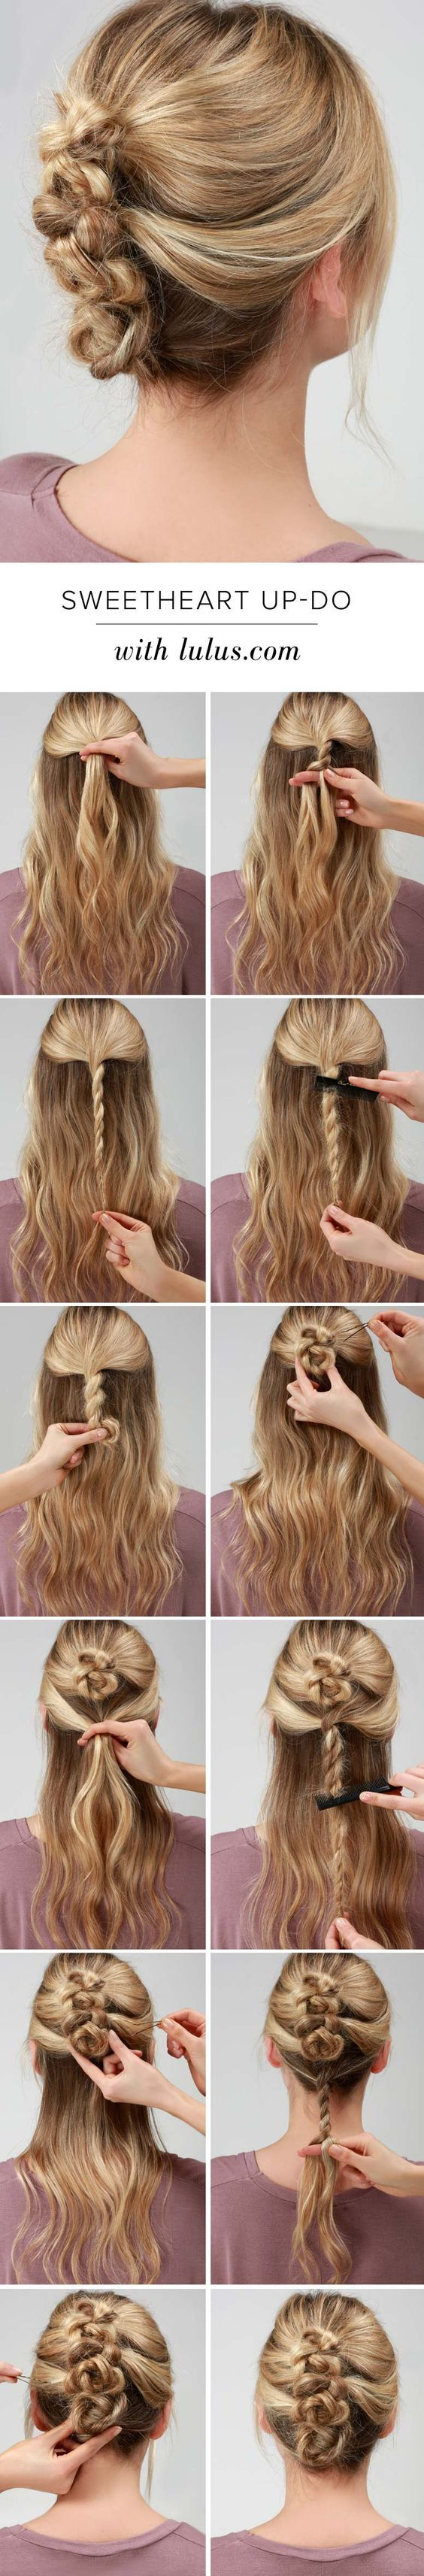 15 Beautiful Hairstyle Tutorials for Women